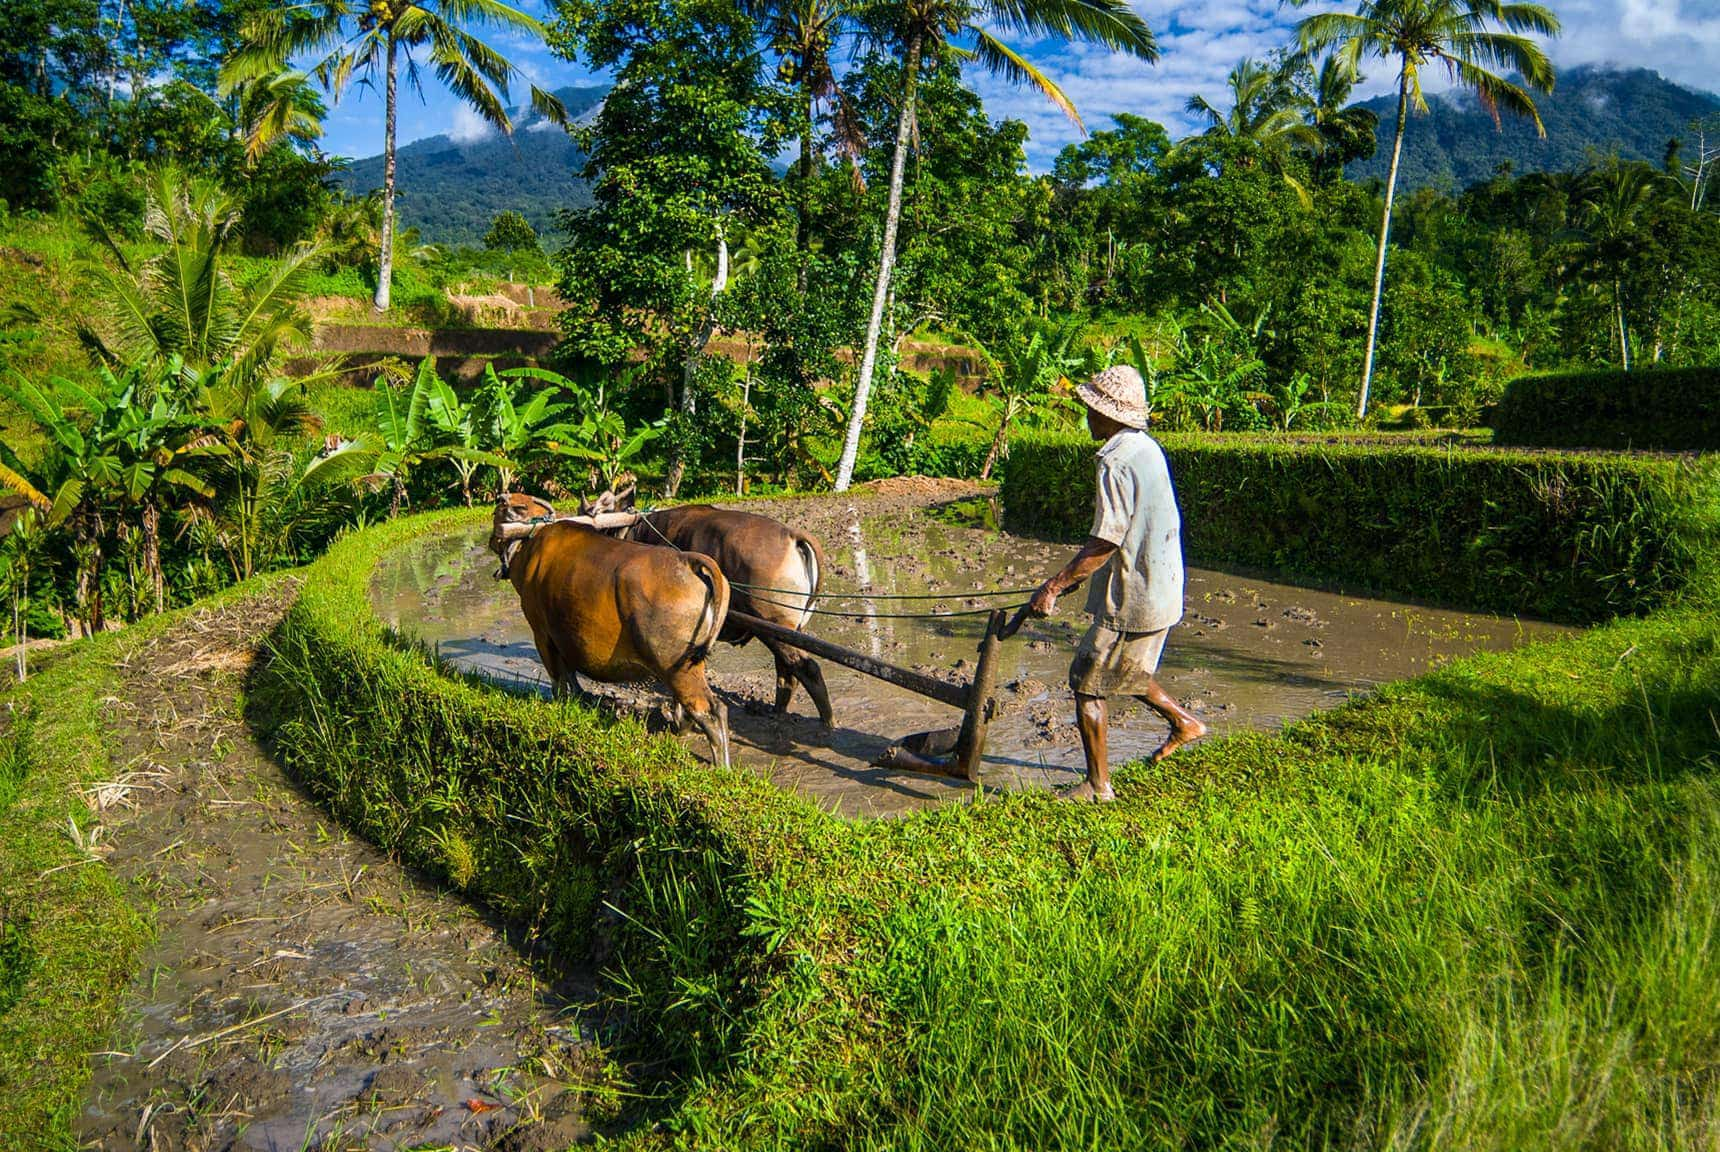 Professional photos of rice planting, harvesting, and processing in Bali Indonesia